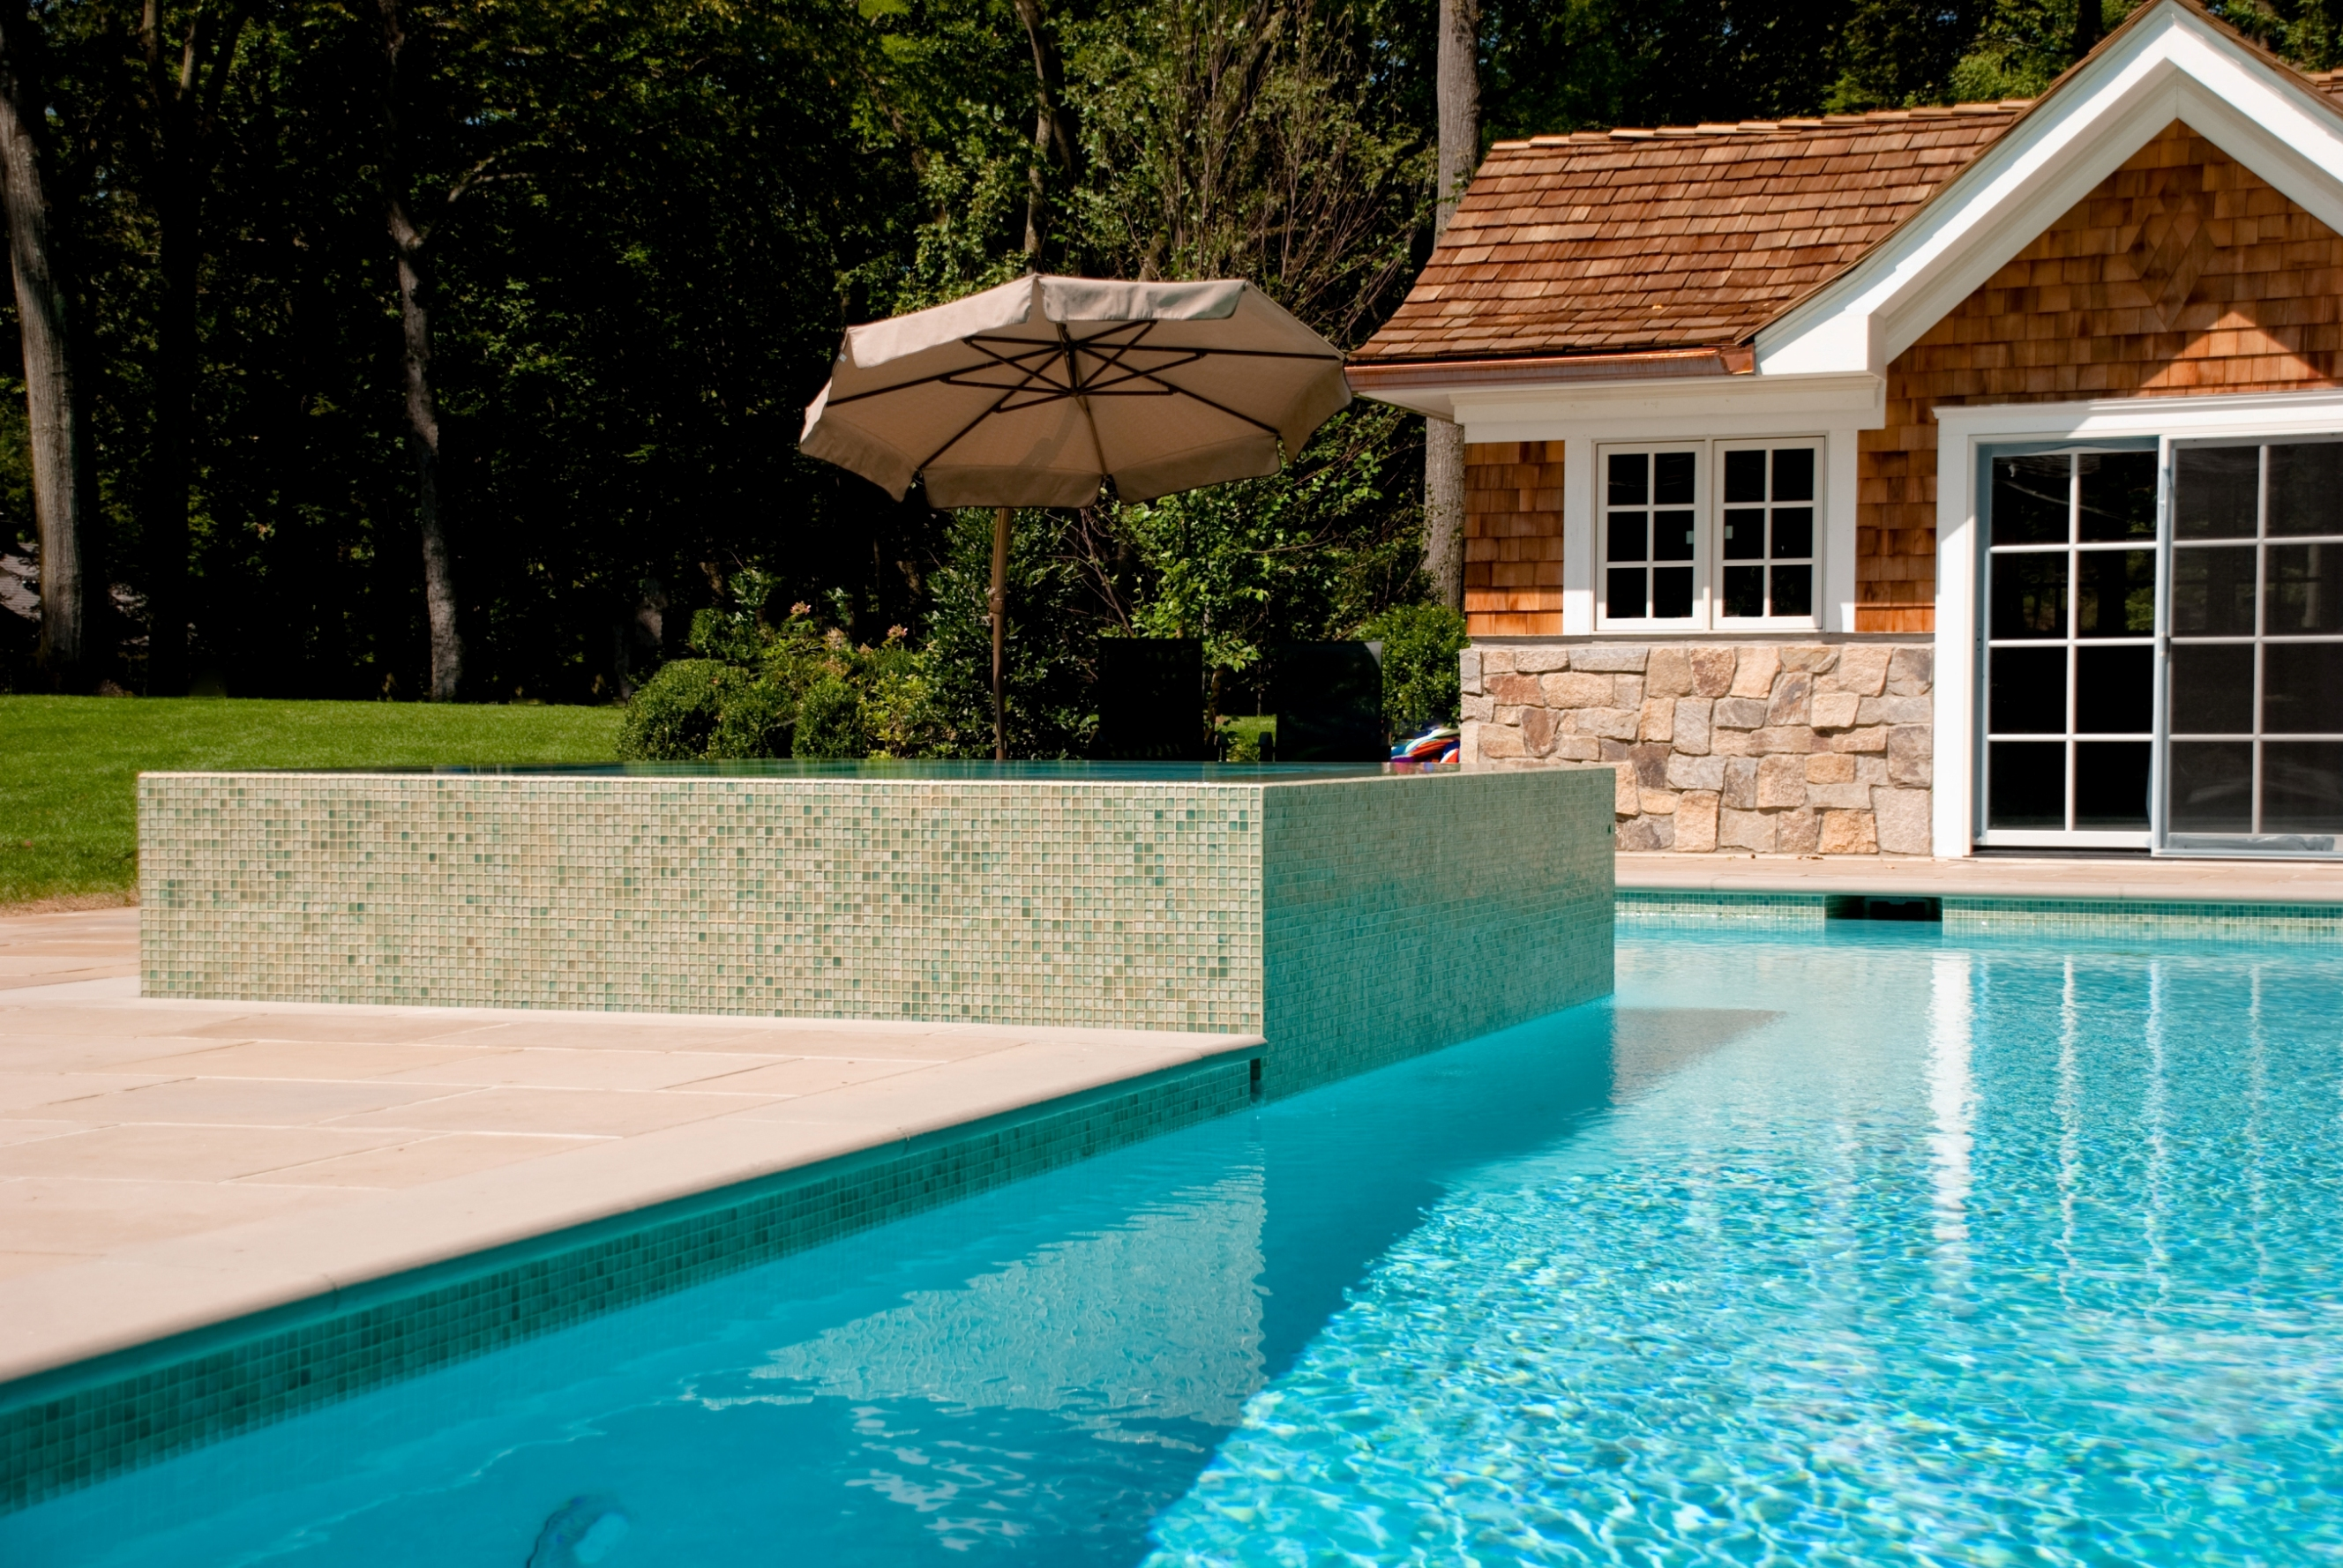 Nj perimeter overflow pool and spa by cipriano custom for Pool design tiles